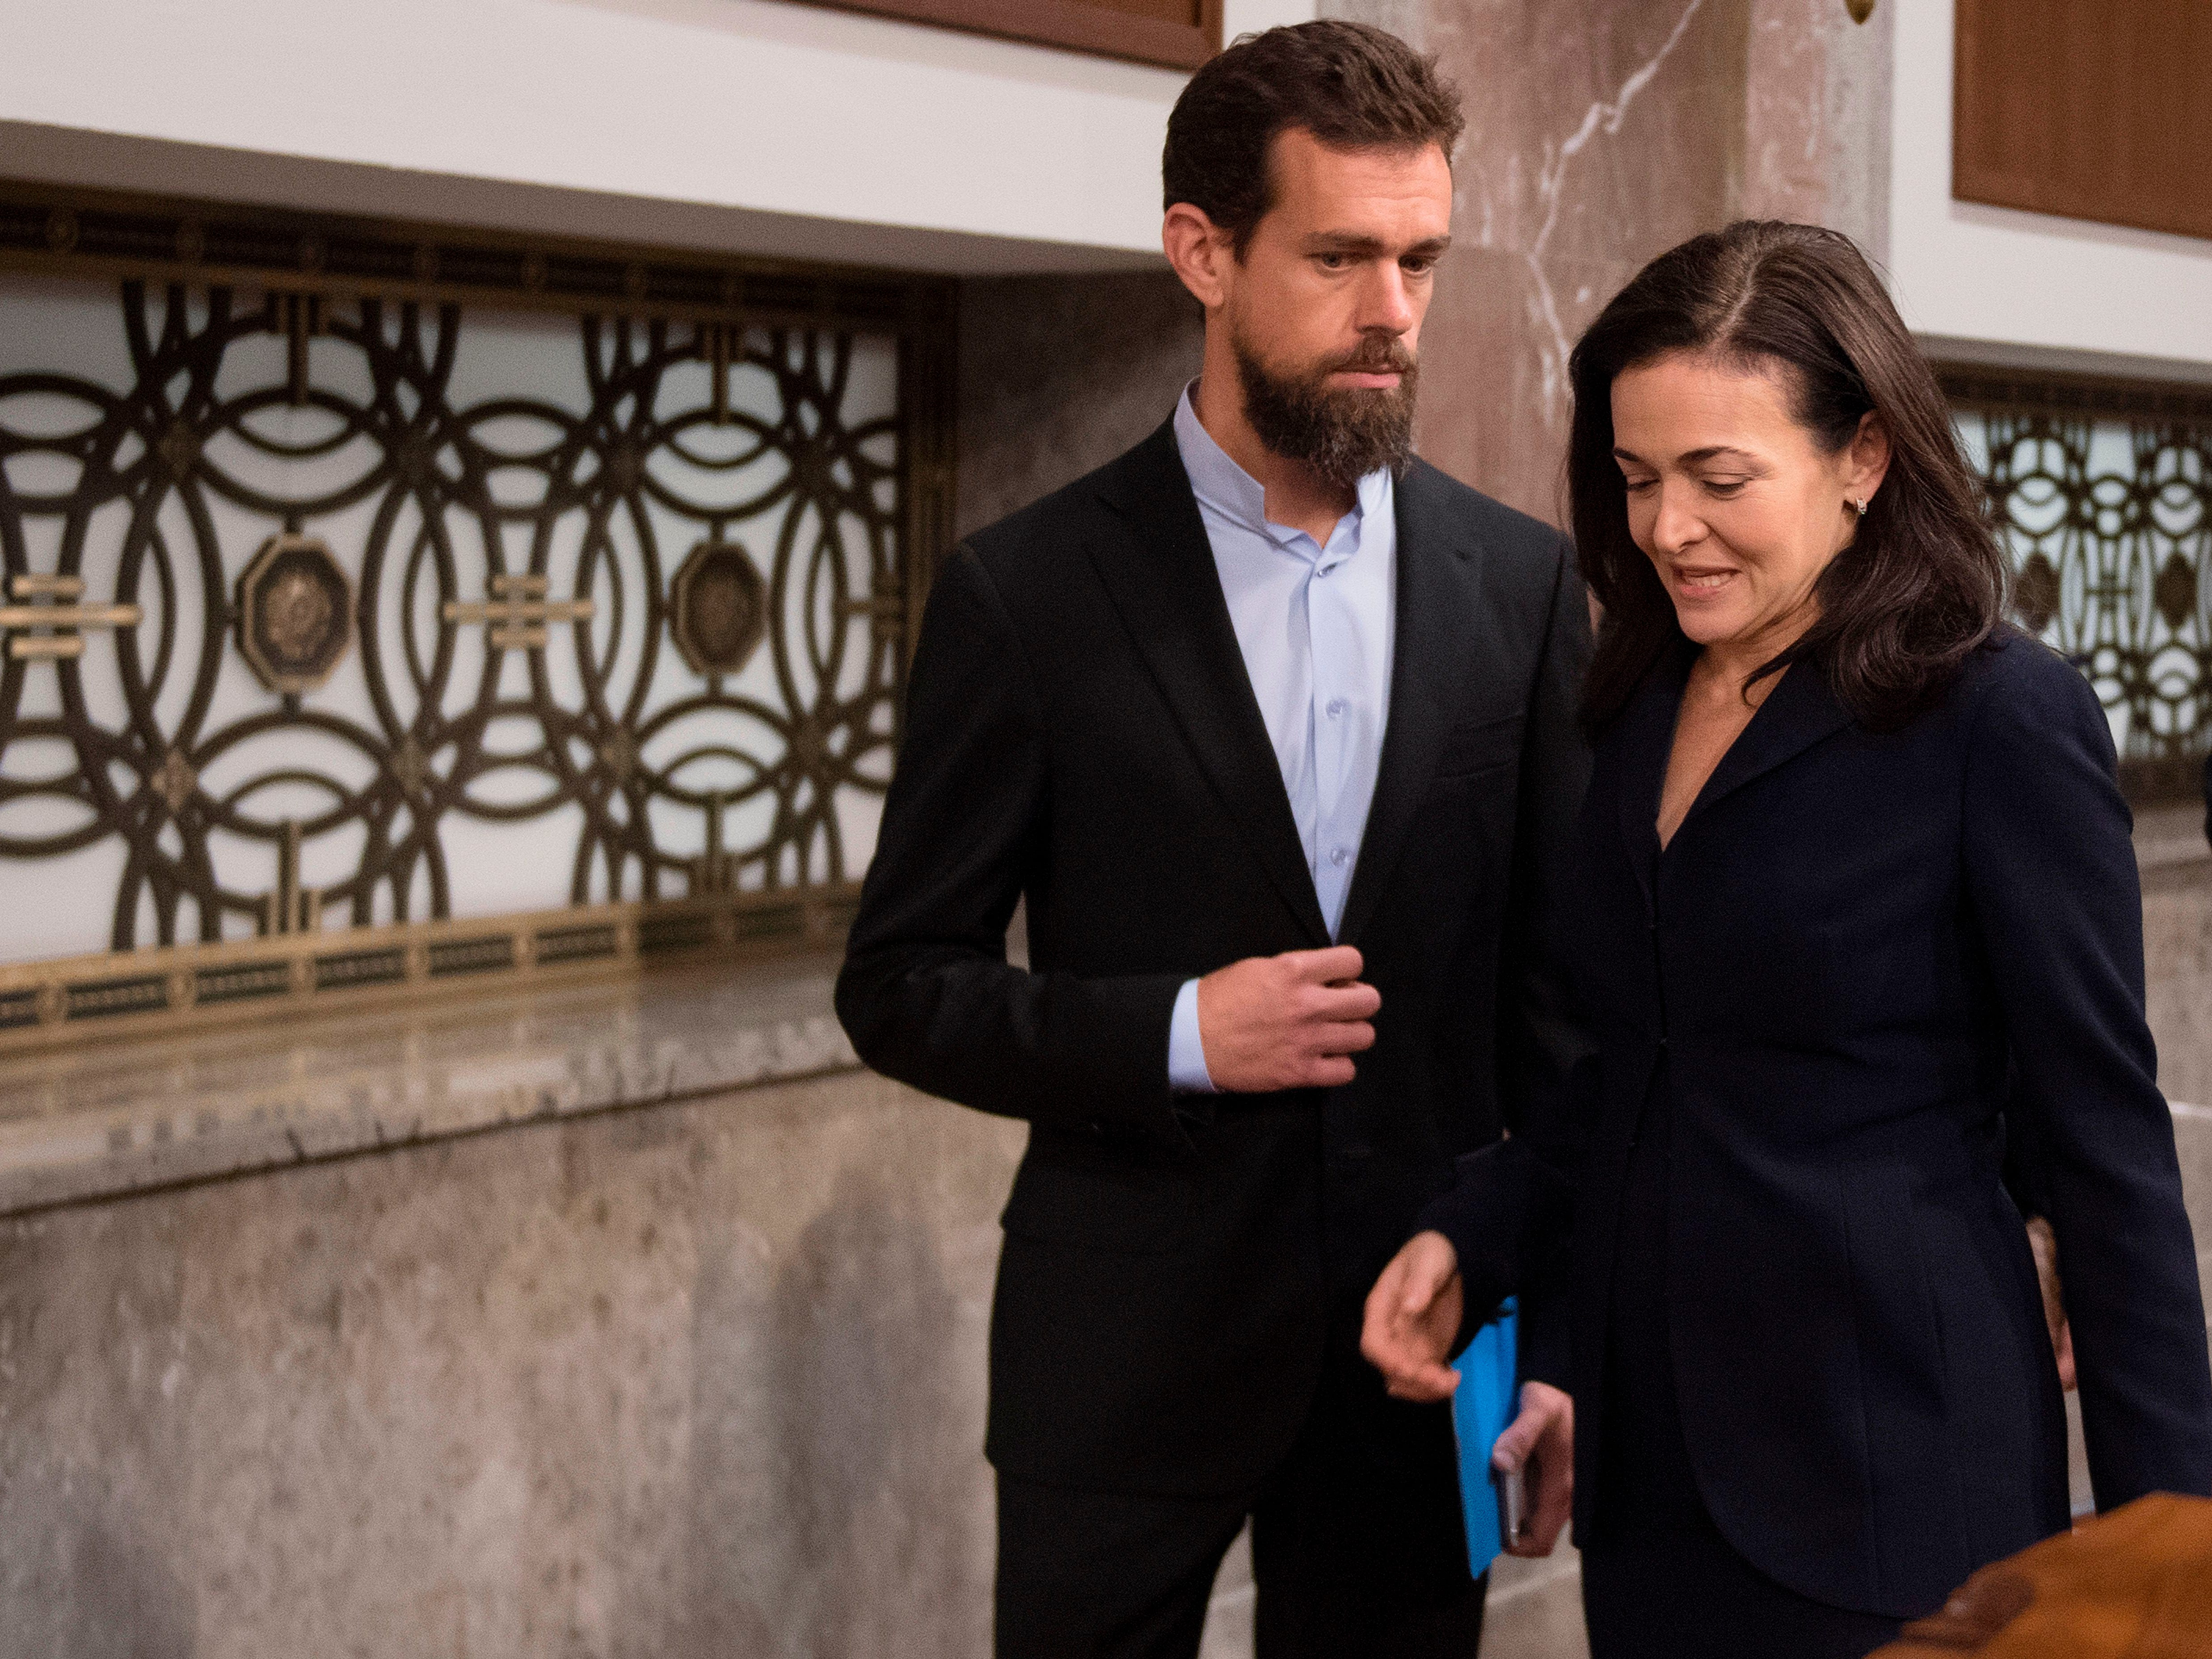 CEO of Twitter Jack Dorsey and Facebook COO Sheryl Sandberg arrive to testify before the Senate Intelligence Committee on Capitol Hill in Washington, D.C., on Sept. 5, 2018.